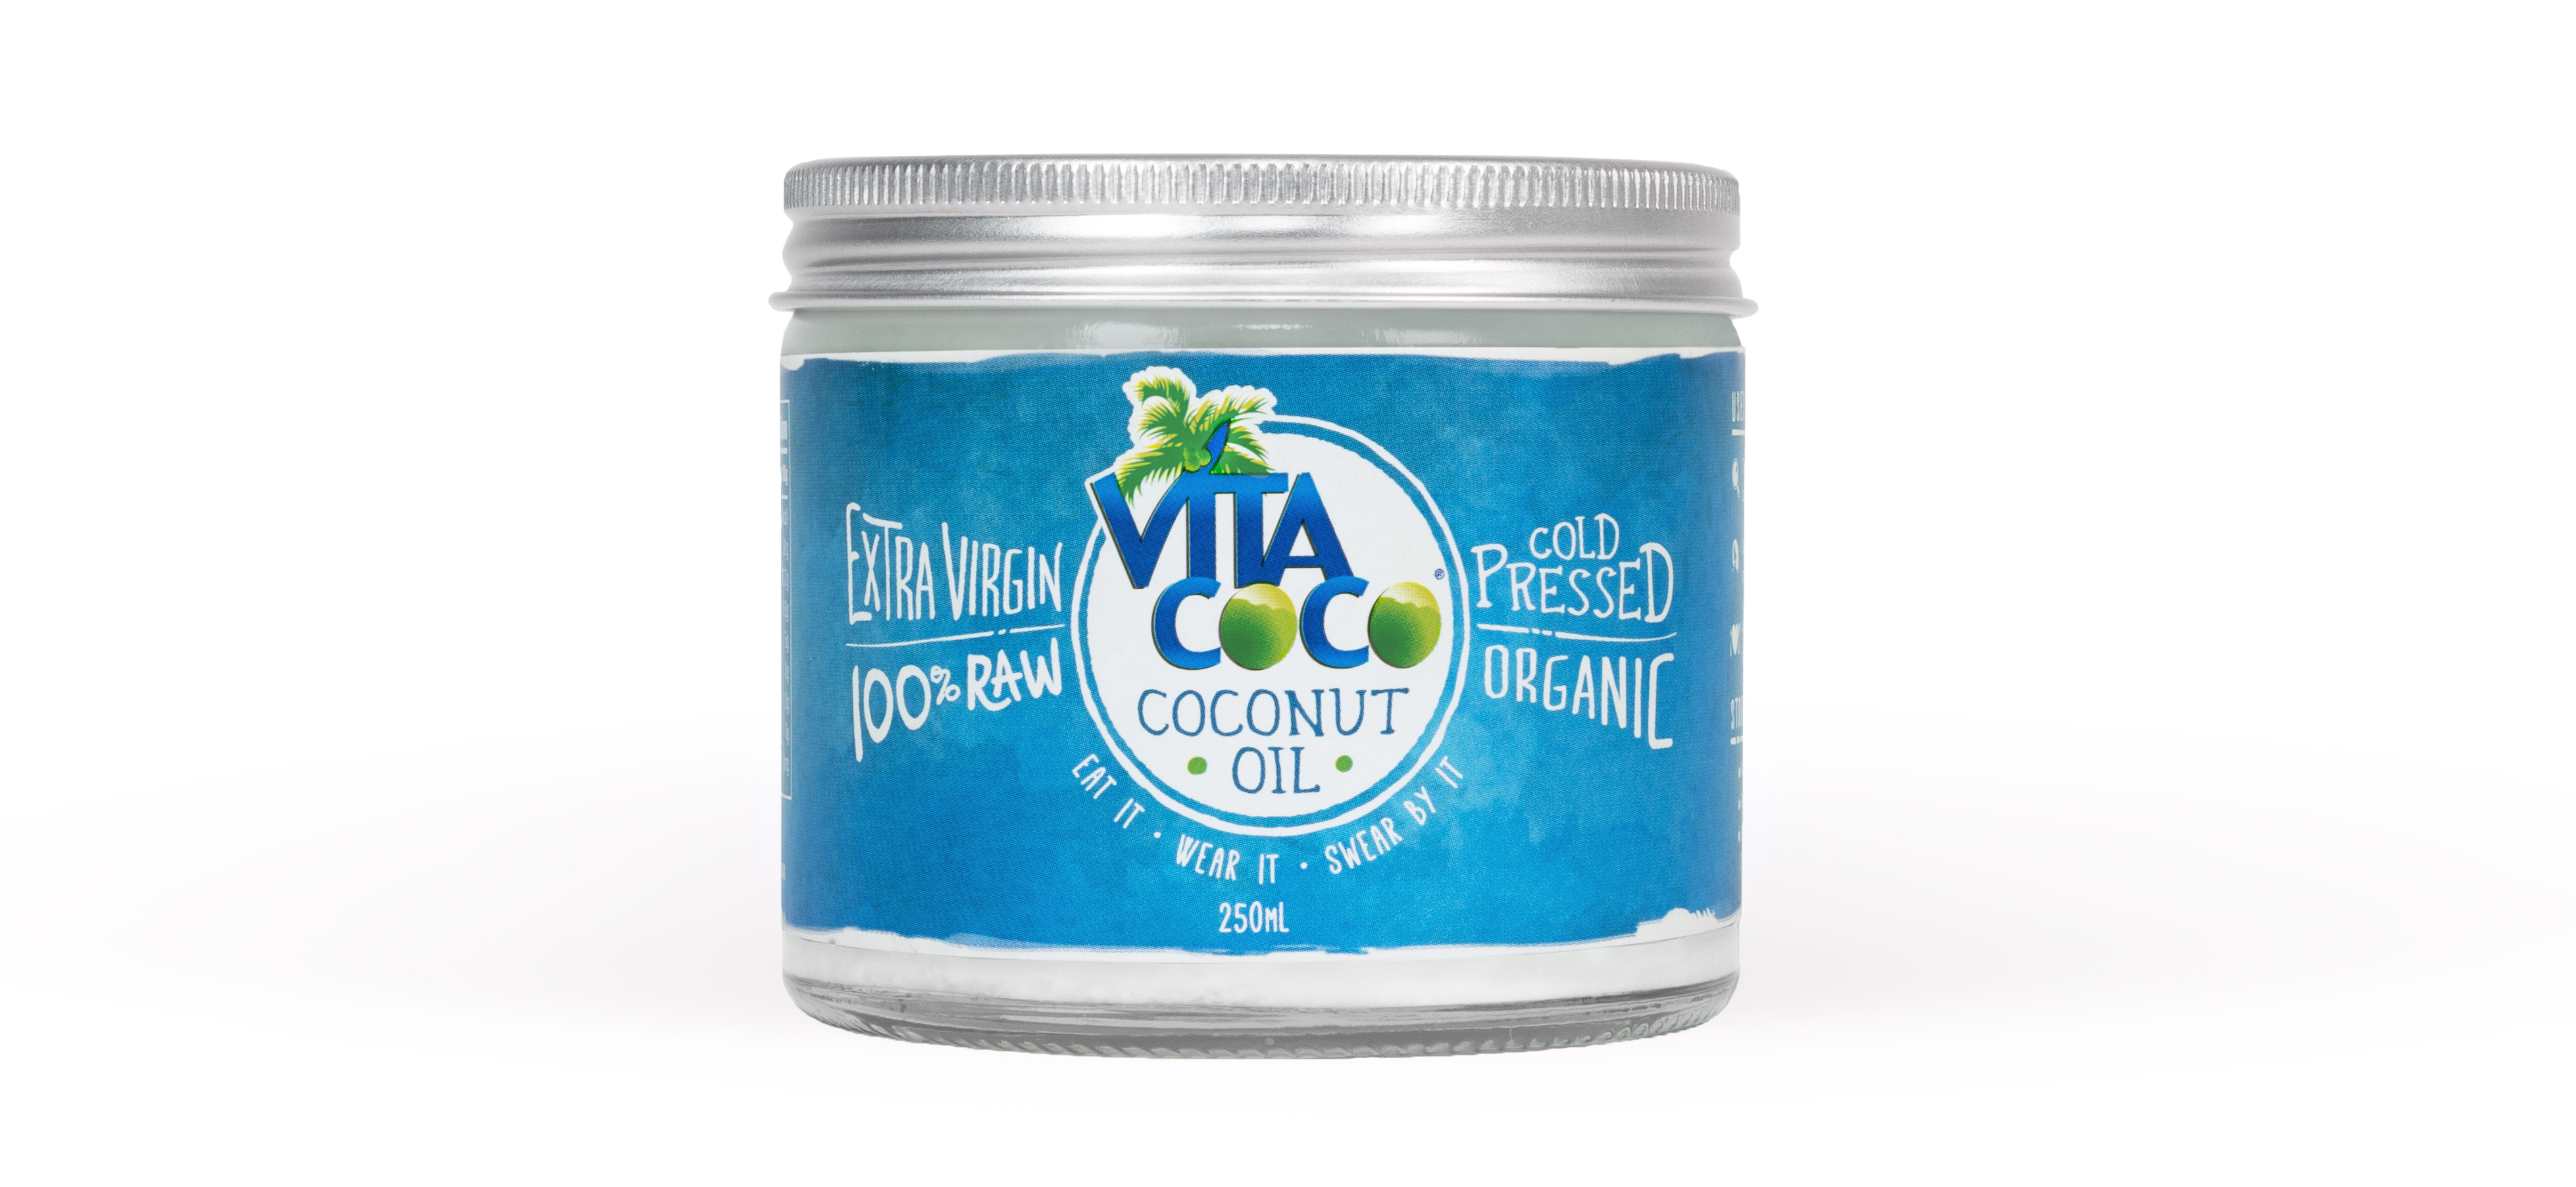 Vita Coco Coconut OiL